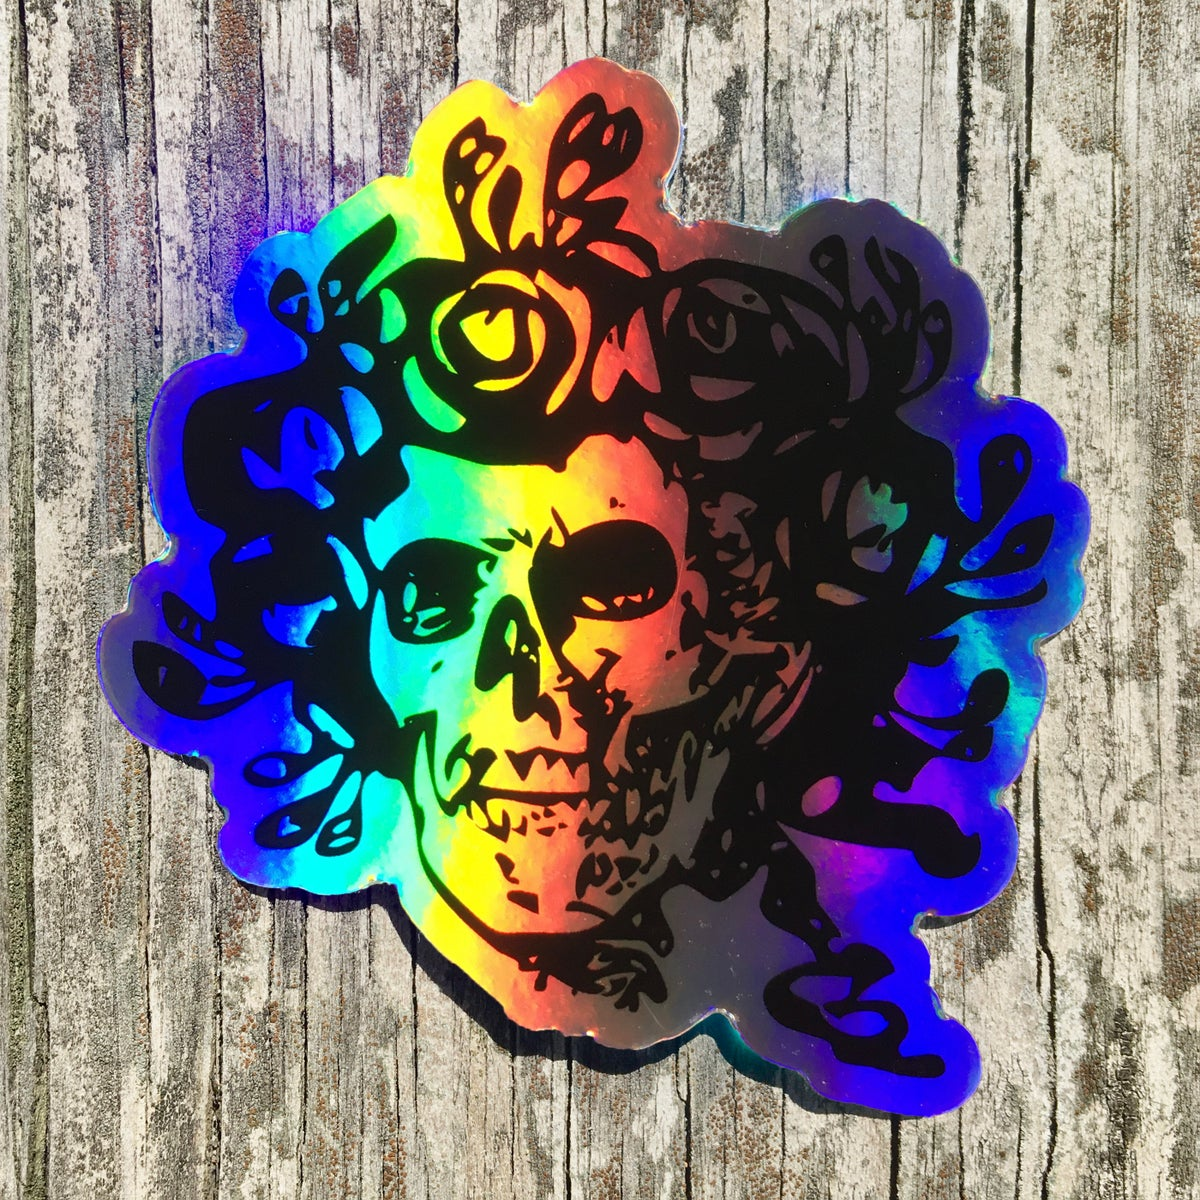 Holographic Bertha Sticker (2-pack)